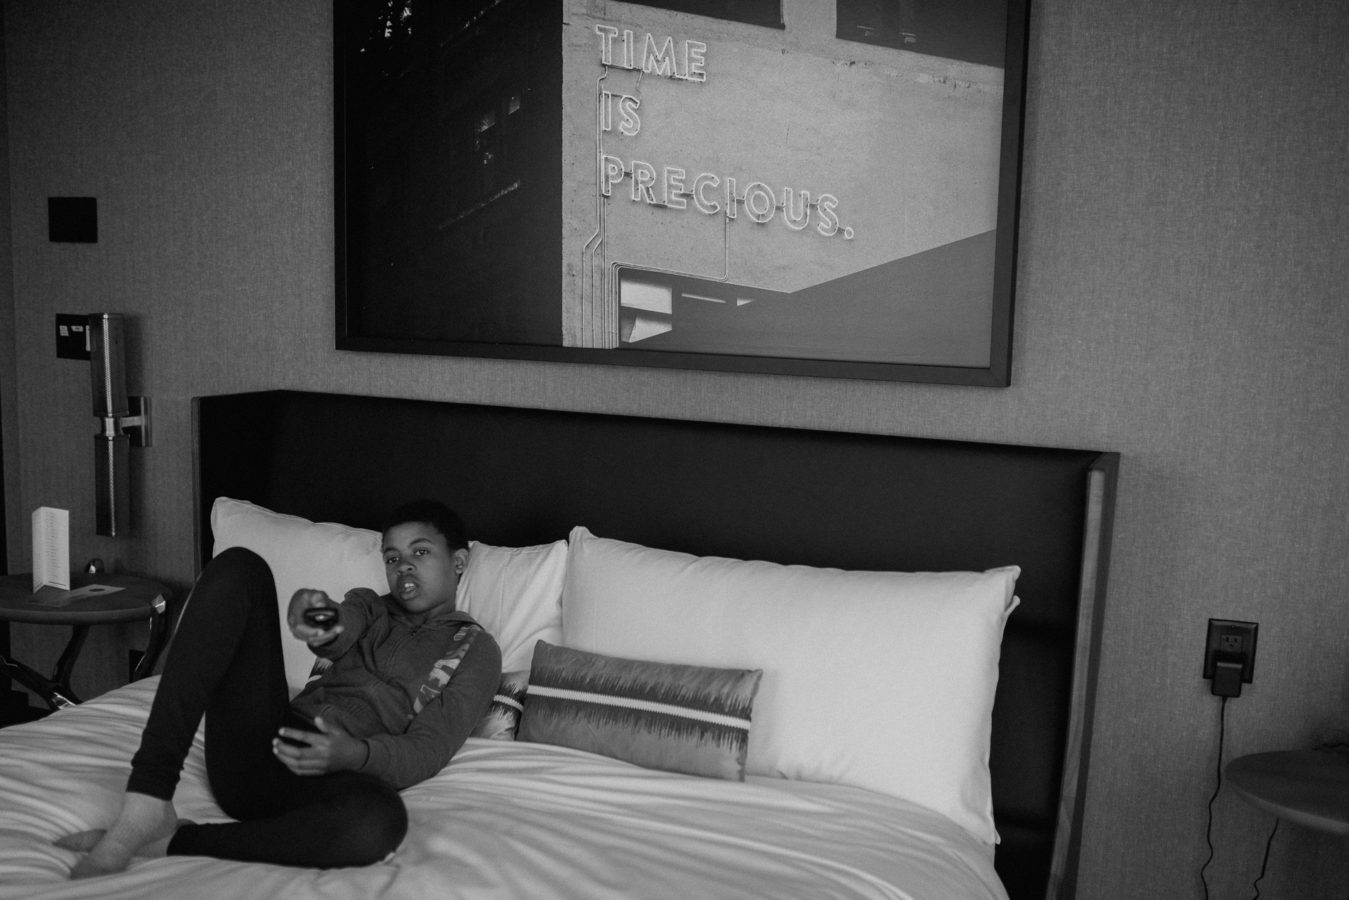 kid lying on a hotel bed pointing the remote at the tv with a large framed photo on the wall behind them that reads Time is Precious